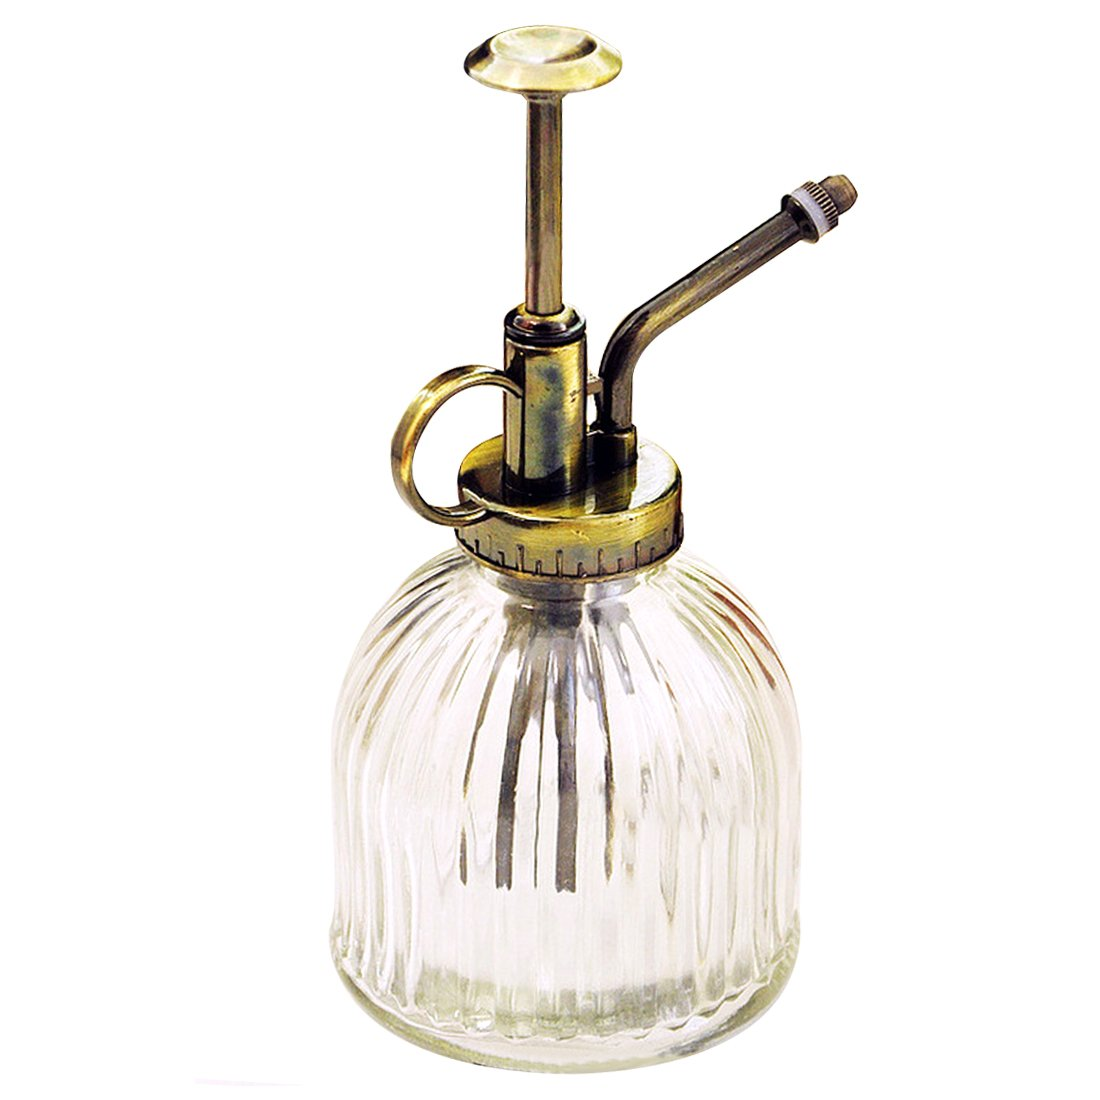 Leagway Glass Watering Spray Bottle, Vintage Style Spritzer With Bronze Plastic Top Pump One Hand Watering Can Spary Bottle, Decorative Plant Atomizer Mister for Indoor Potted Plants Flowers (Clear)